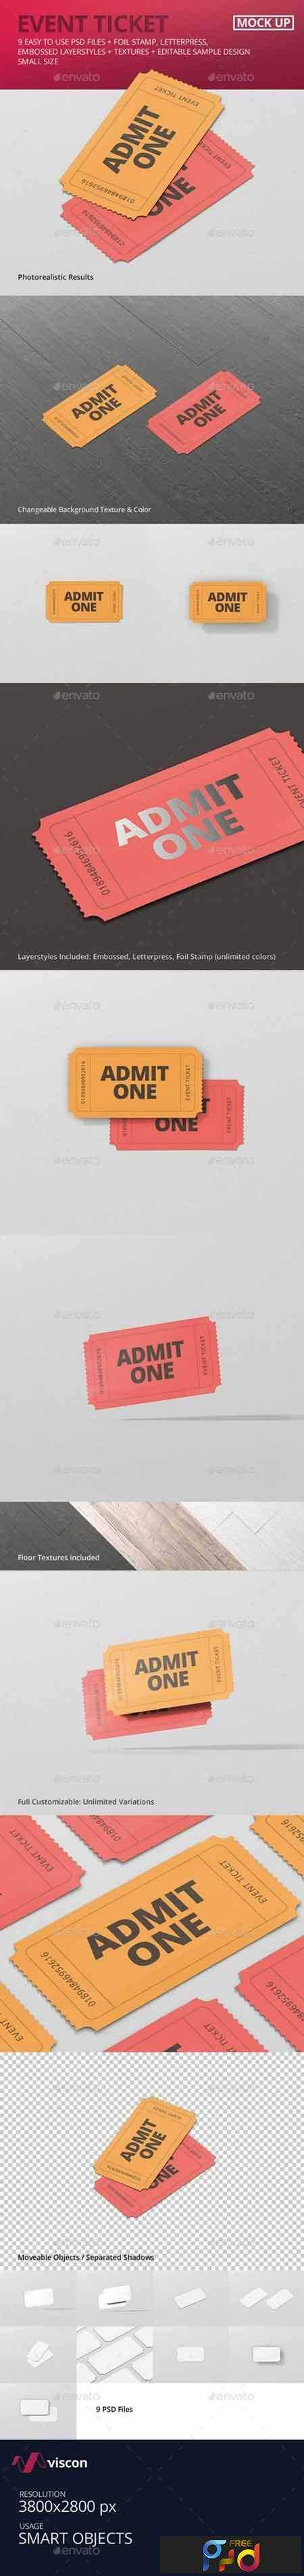 1801002 Event Ticket Mockup - Small Size 21220927 1